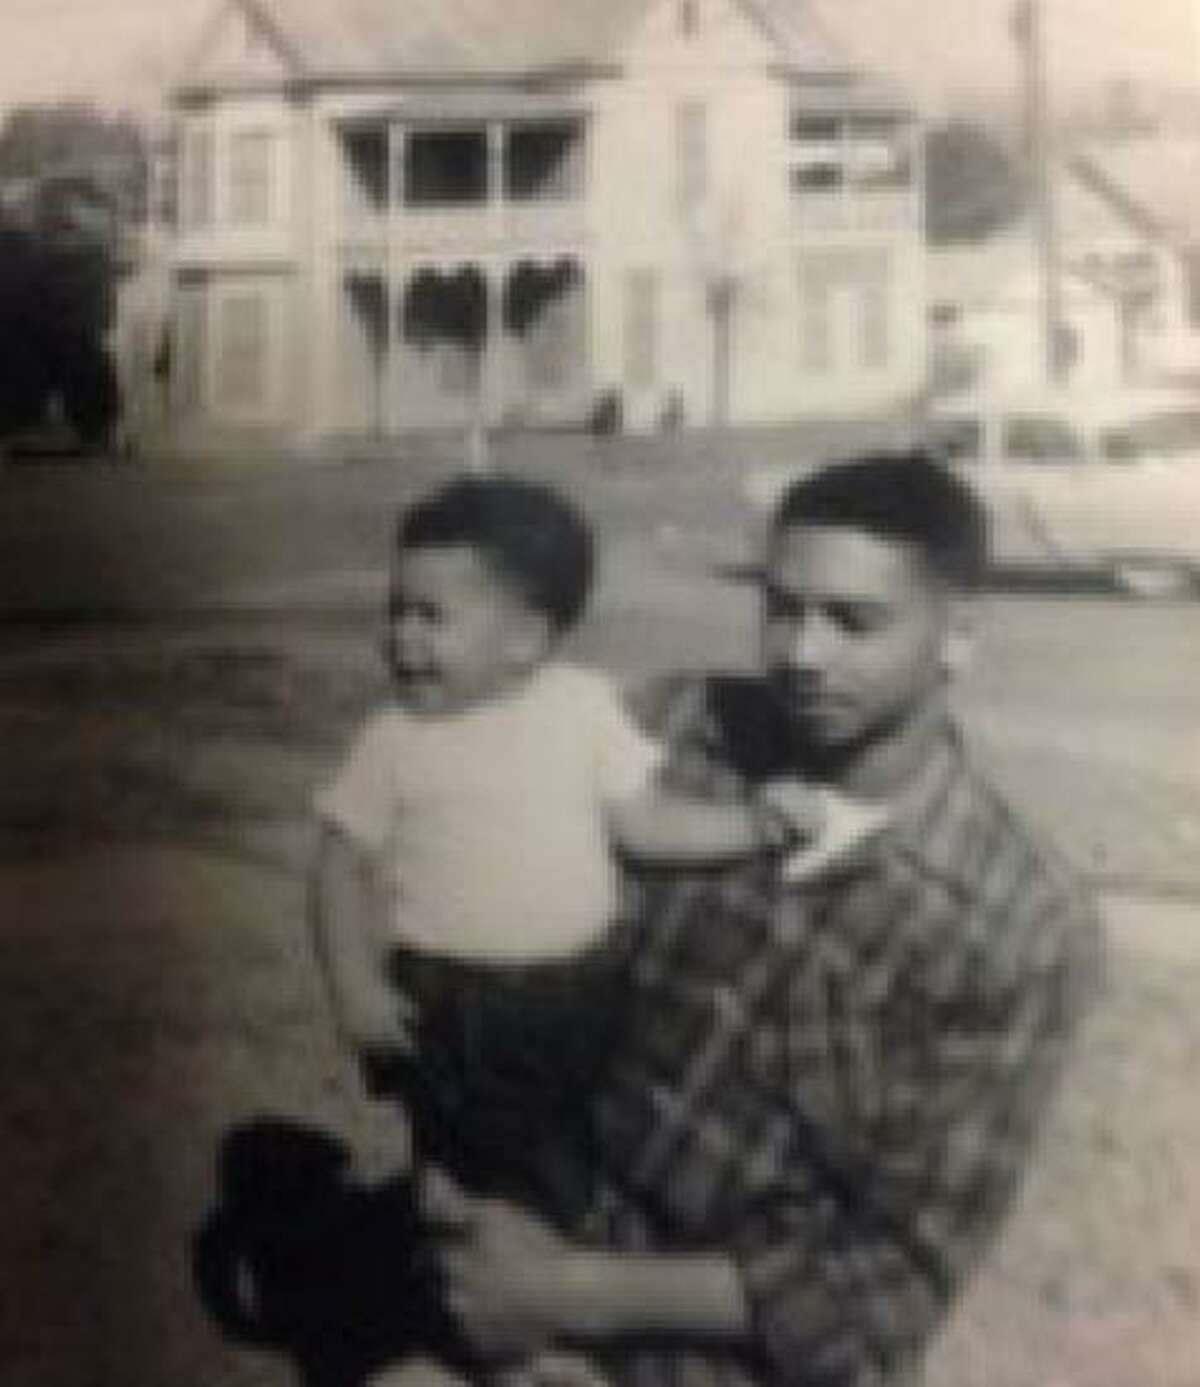 A reader appreciates Cary Clack reminiscing about his late father, Charlie- a former sheriff's deputy - in a column on Sunday.